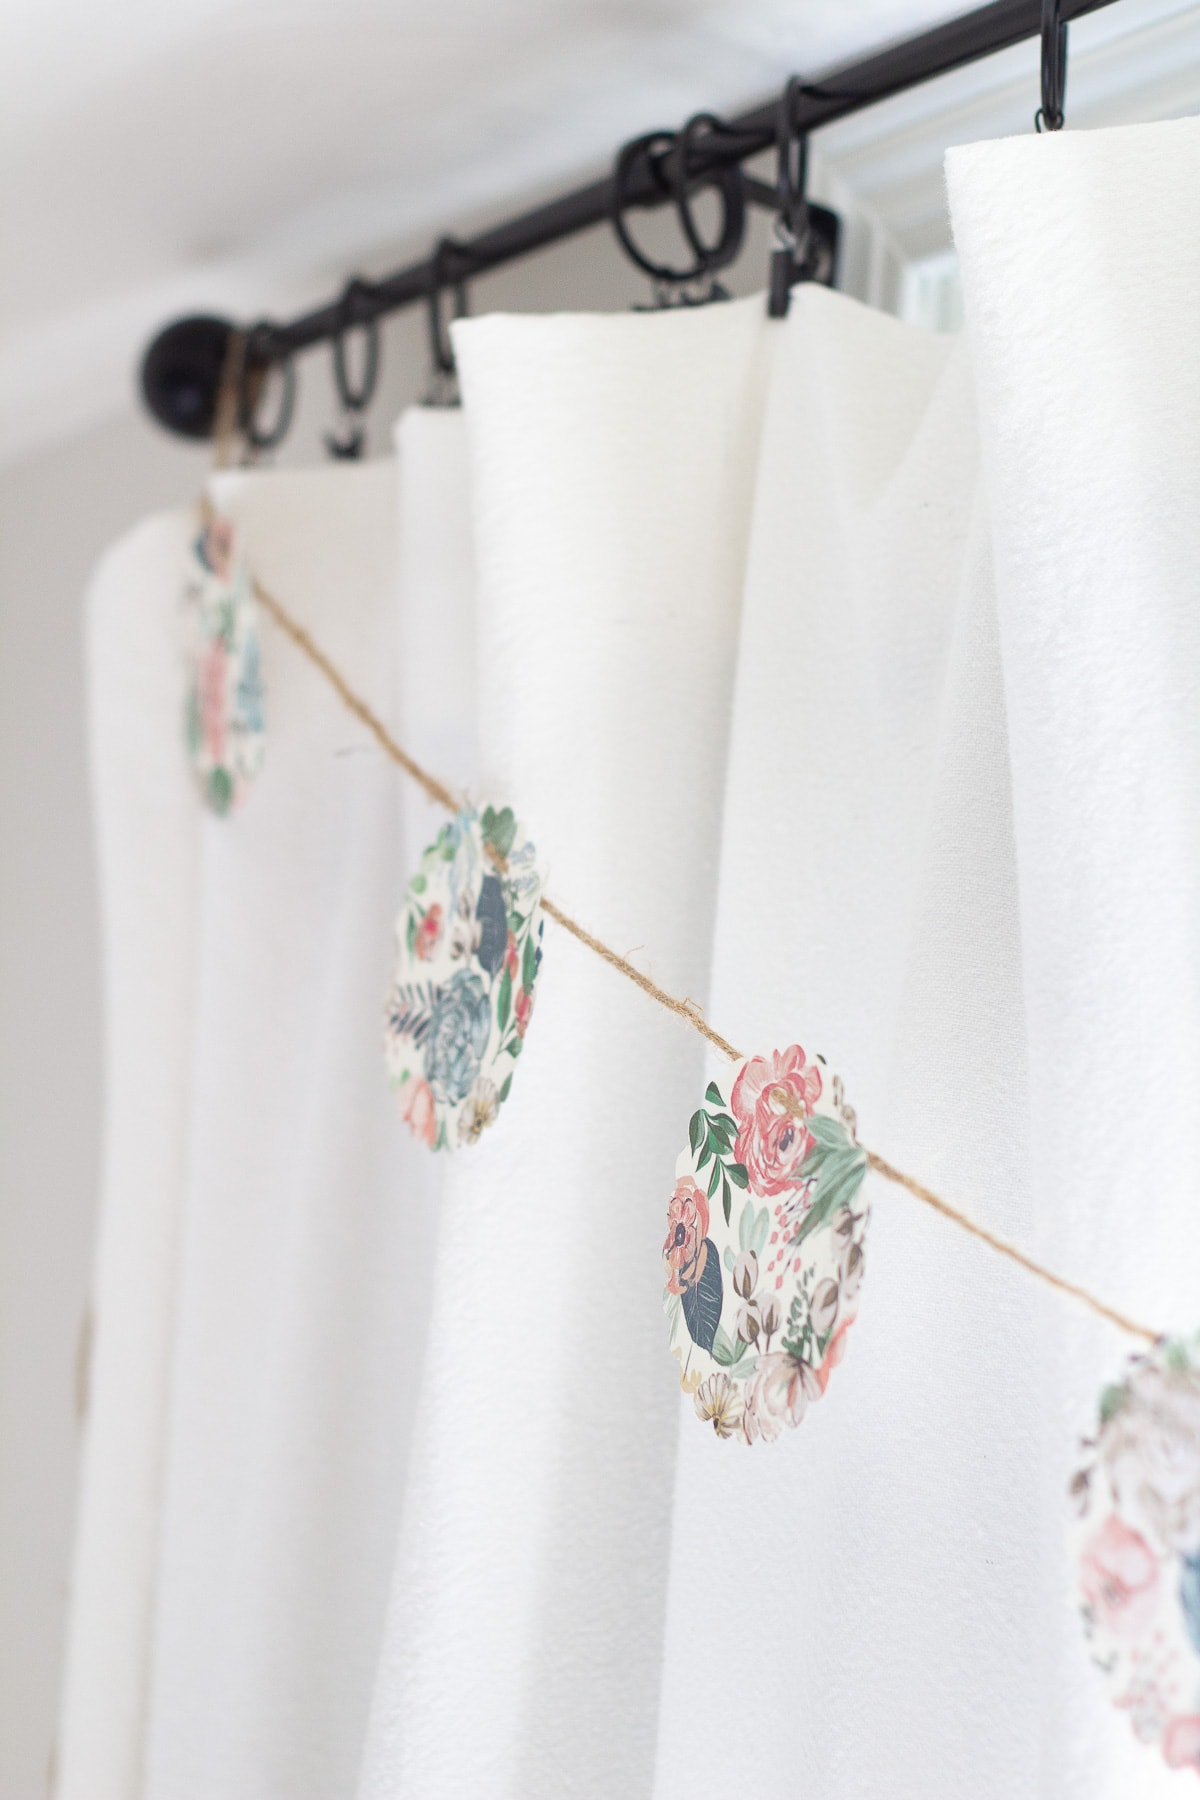 10-Minute No-Sew Paper Garland